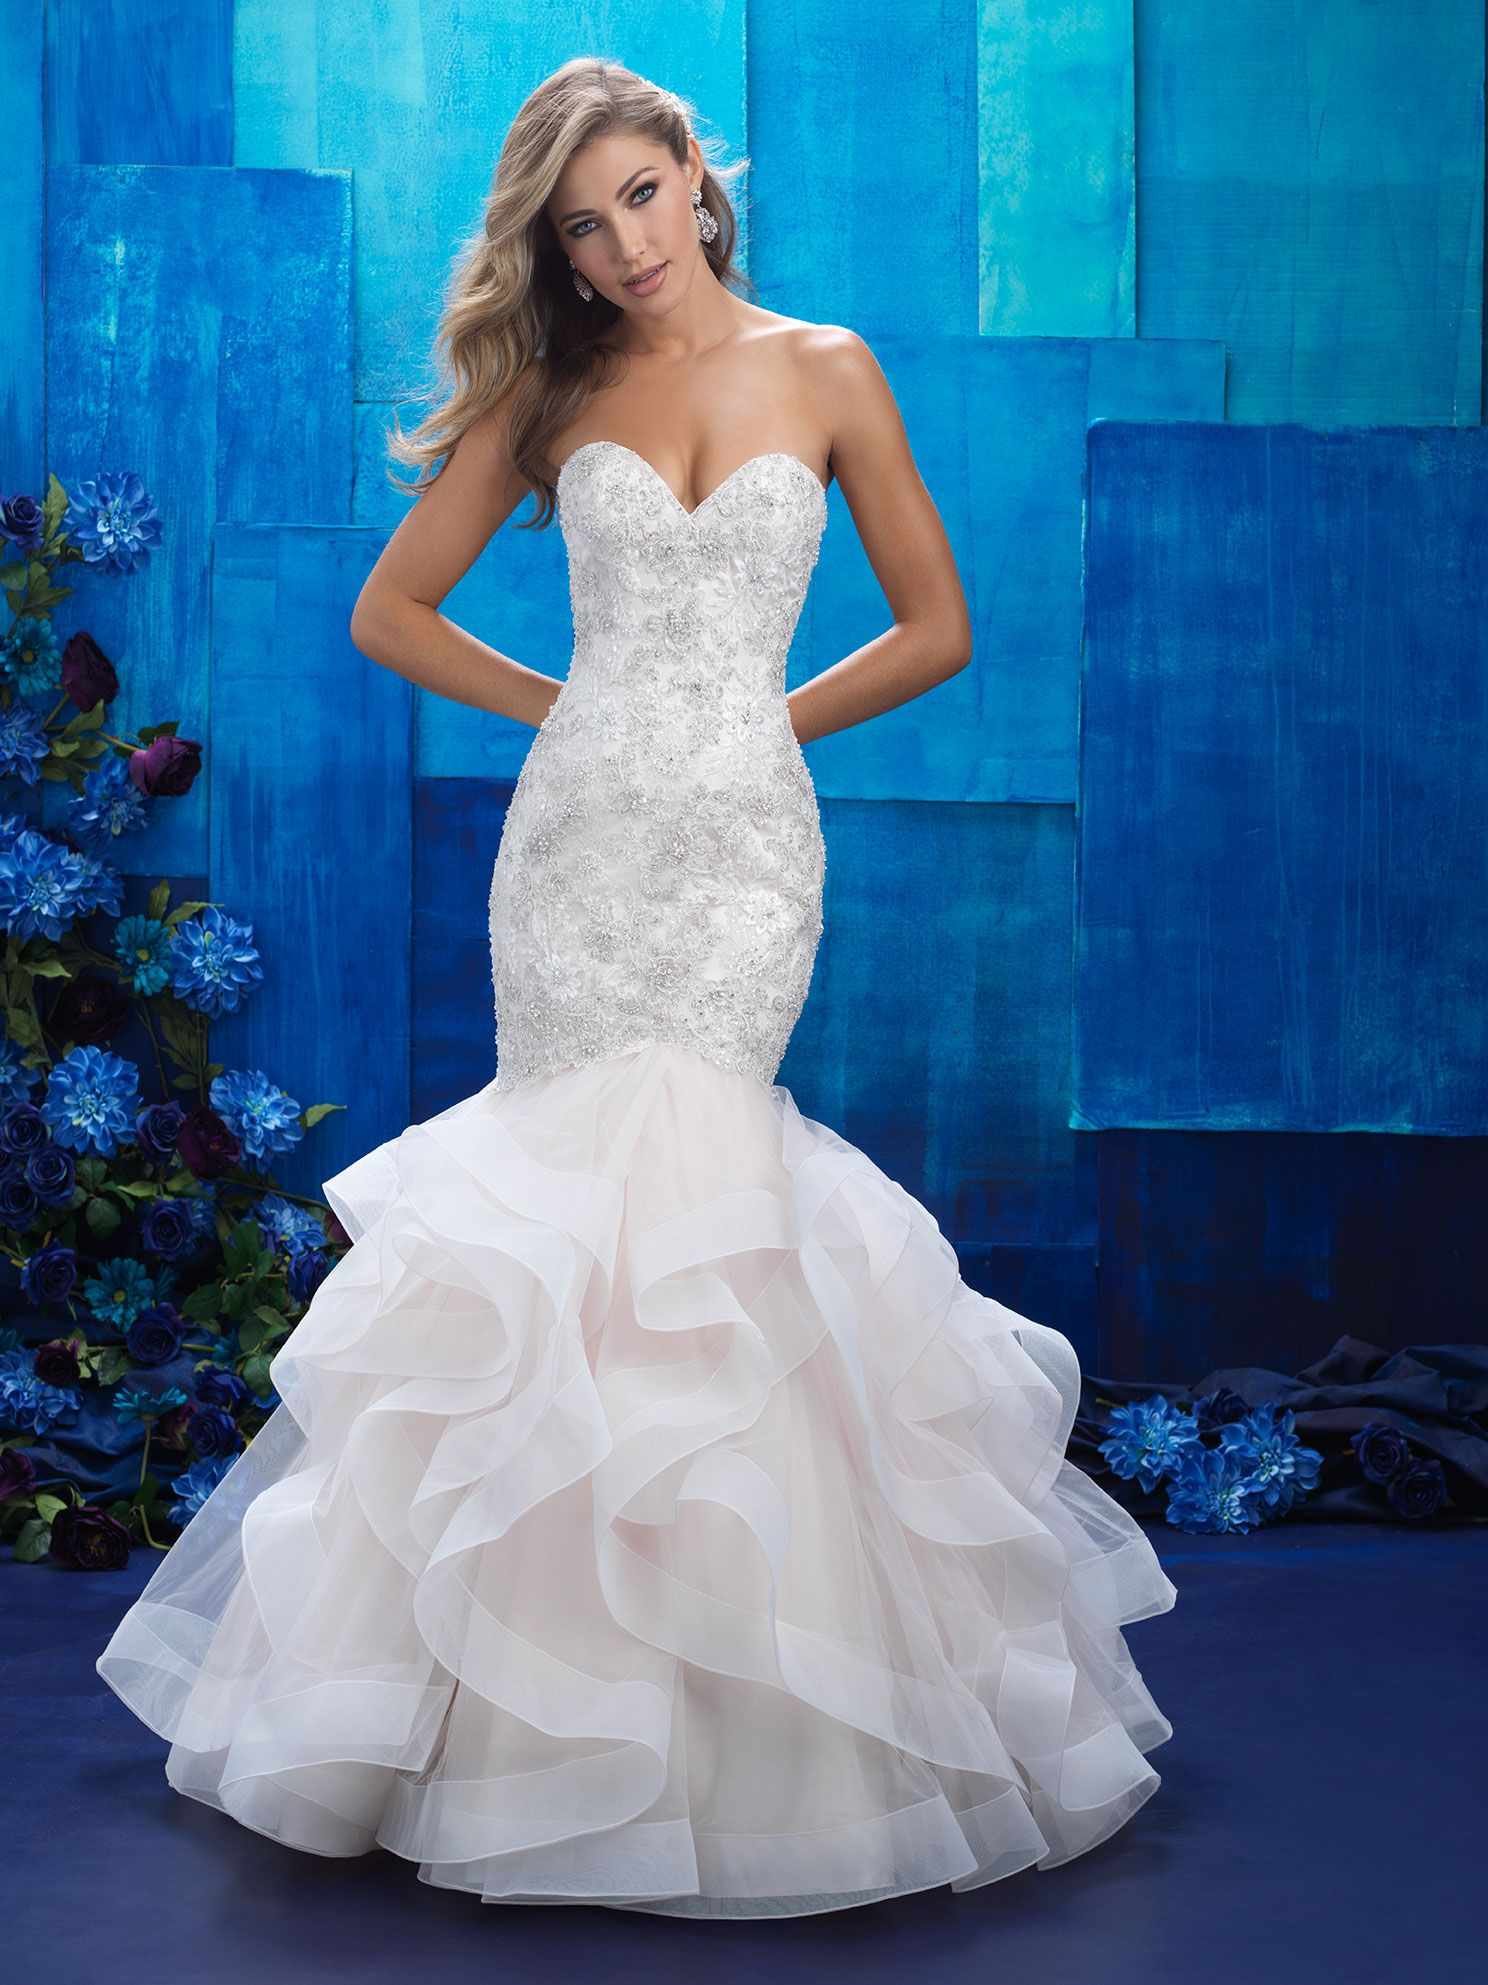 bbb6c43890b New Bridal Gown Available at Ella Park Bridal